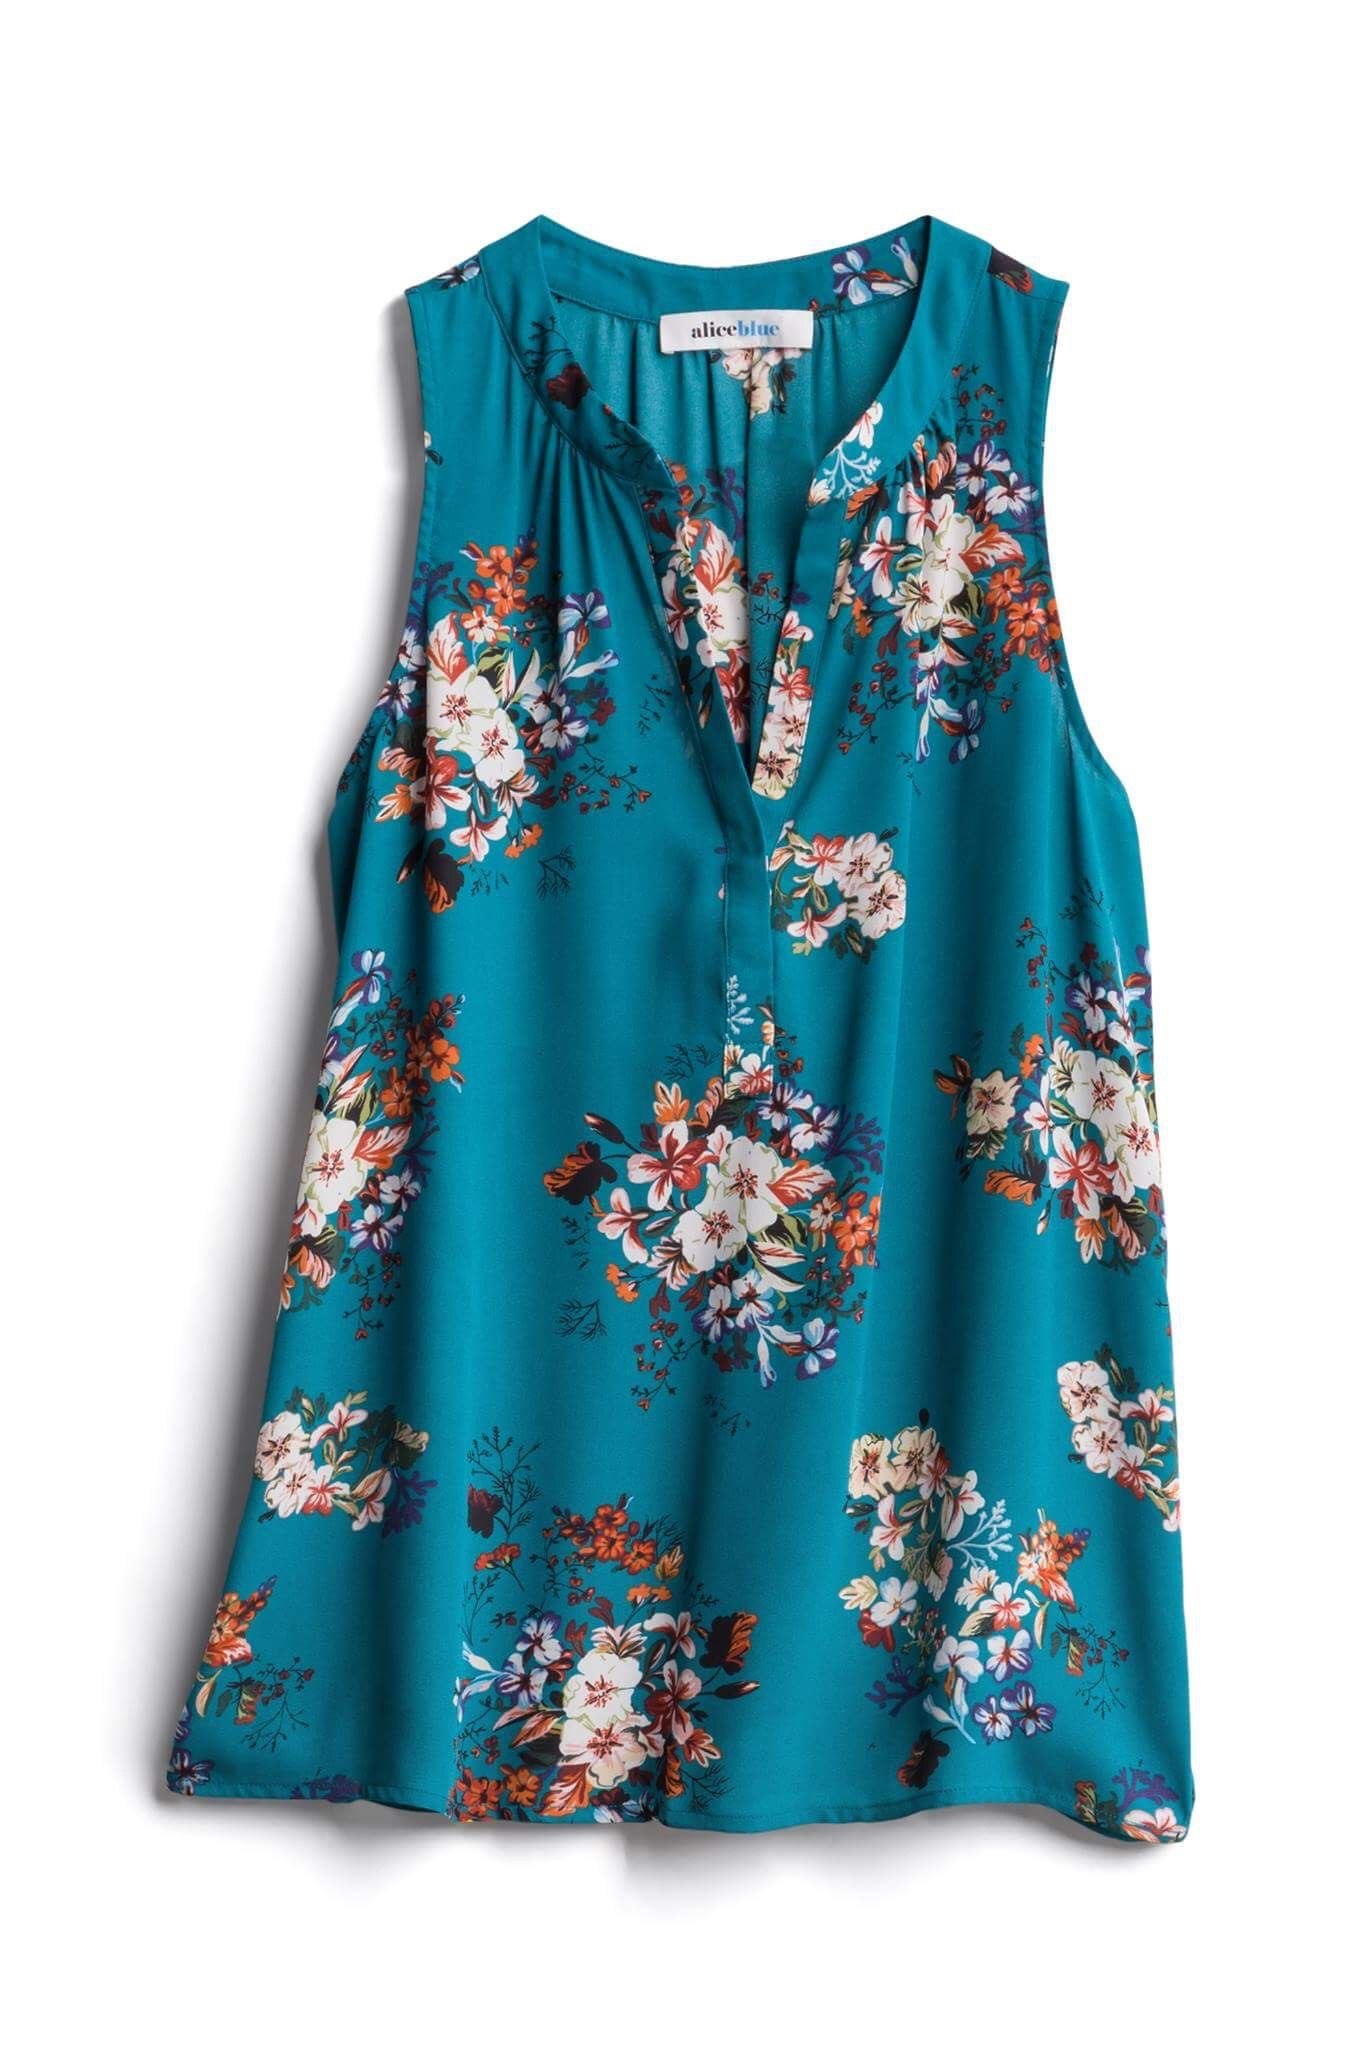 01e14bf87a3 Alice Blue Teal Floral Sleeveless Blouse - Stitch Fix Style Shuffle -  Affiliate Link Included